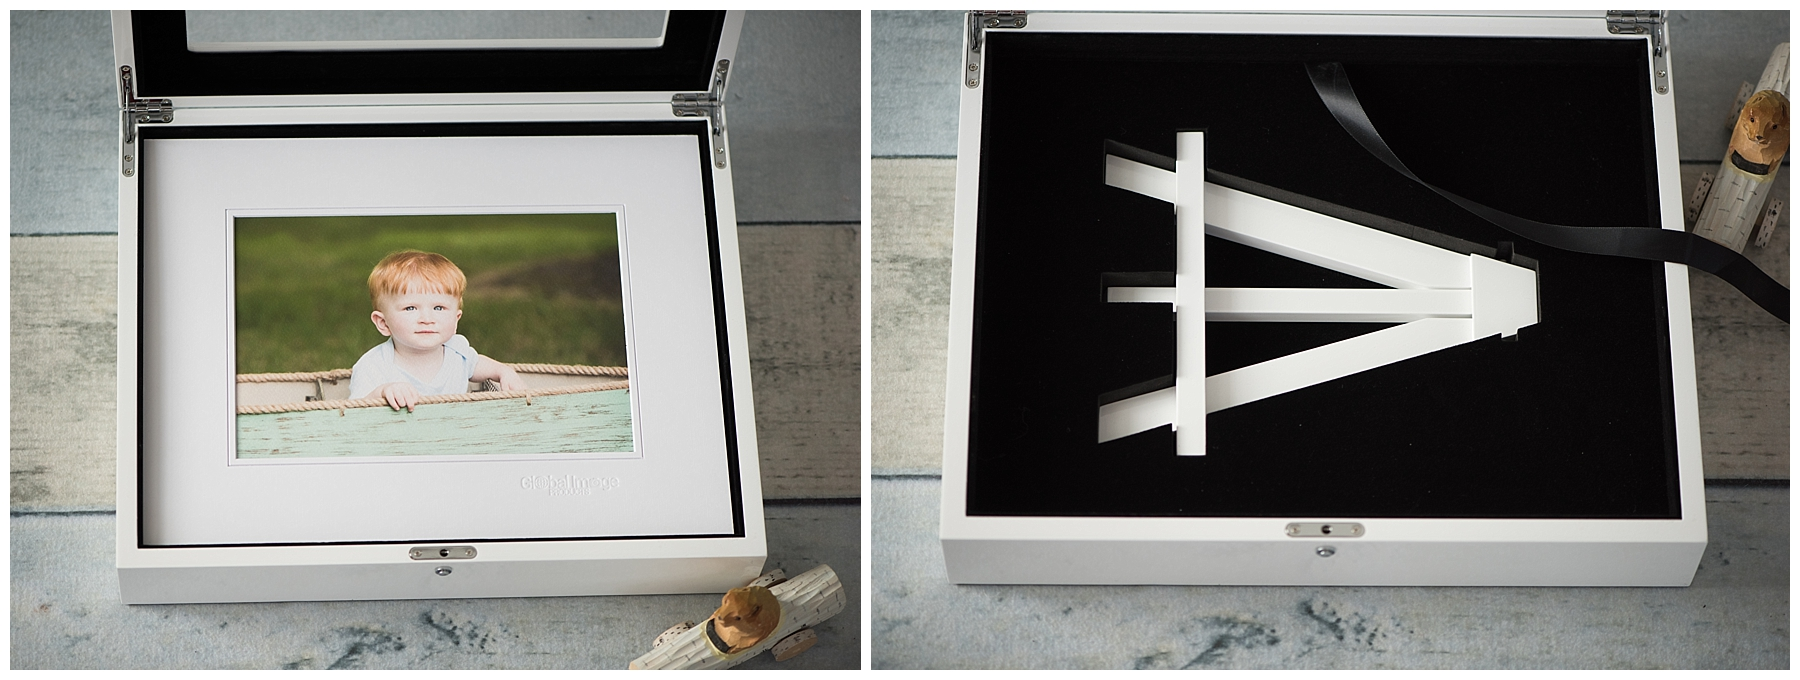 Matted or mounted, fine art prints look amazing on our optional coordinating easel. The easel may be stored under prints, when not in use. Folio boxes are available in sizes 8x10 or 11x14 and come in your choice of white, black or natural wood.